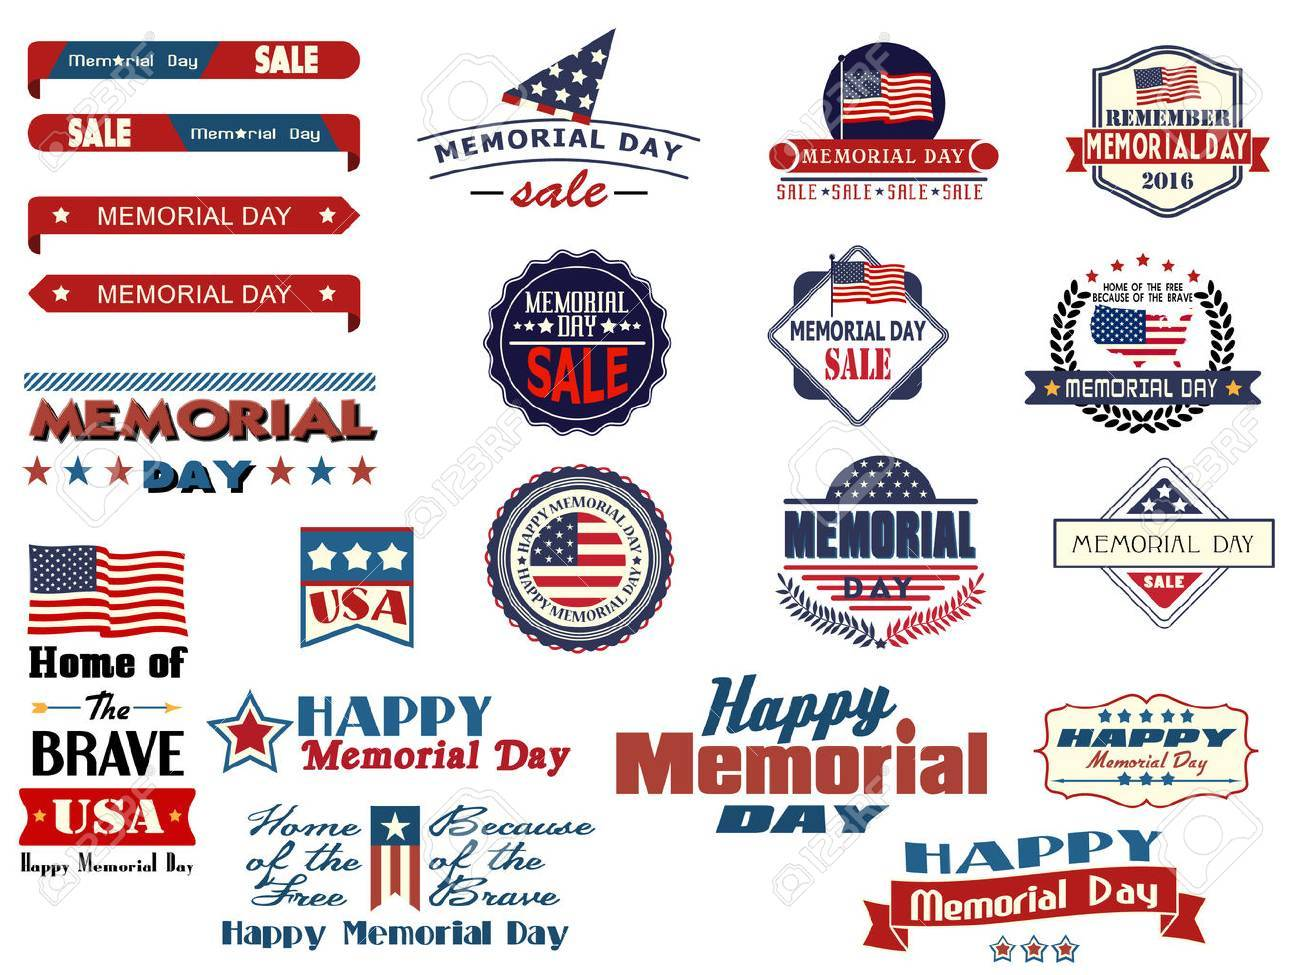 Various Memorial Day sale badges and sticke - 53163123